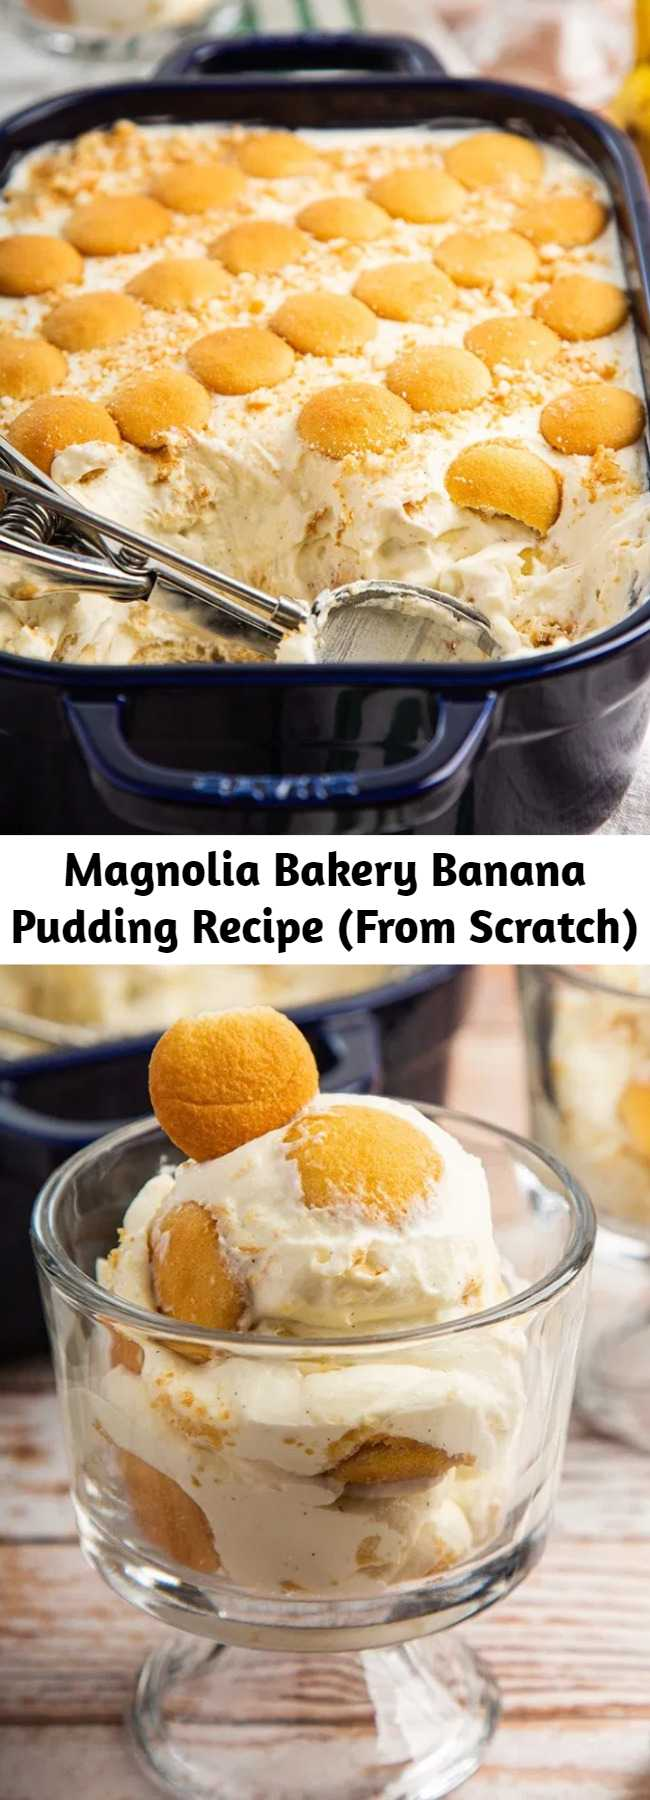 Magnolia Bakery Banana Pudding Recipe (From Scratch) - This Banana Pudding is a copycat recipe of Magnolia Bakery. Unlike regular banana pudding, this one has whipped cream mixed into the pudding. It's fluffy & creamy. And now, you can make that at home from scratch (sorry, no instant pudding mix) with better ingredients, cheaper & more! #magnoliabakery #copycatrecipe #banana #pudding #bananapudding #partyfood #dessert #dessertrecipe